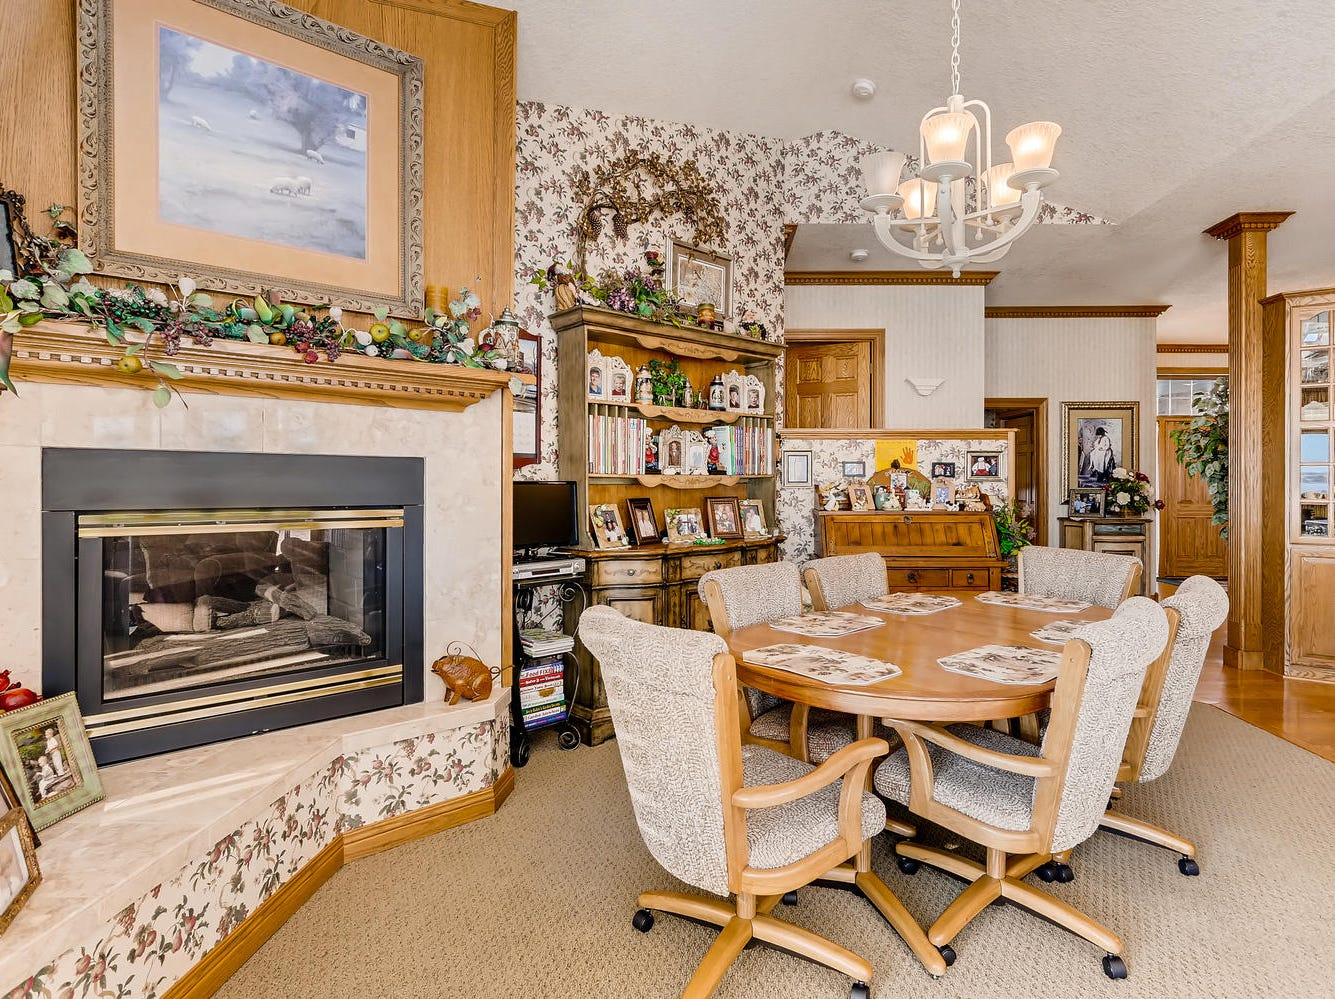 The kitchen island opens to the informal dining area warmed by a gas fireplace and large hearth.